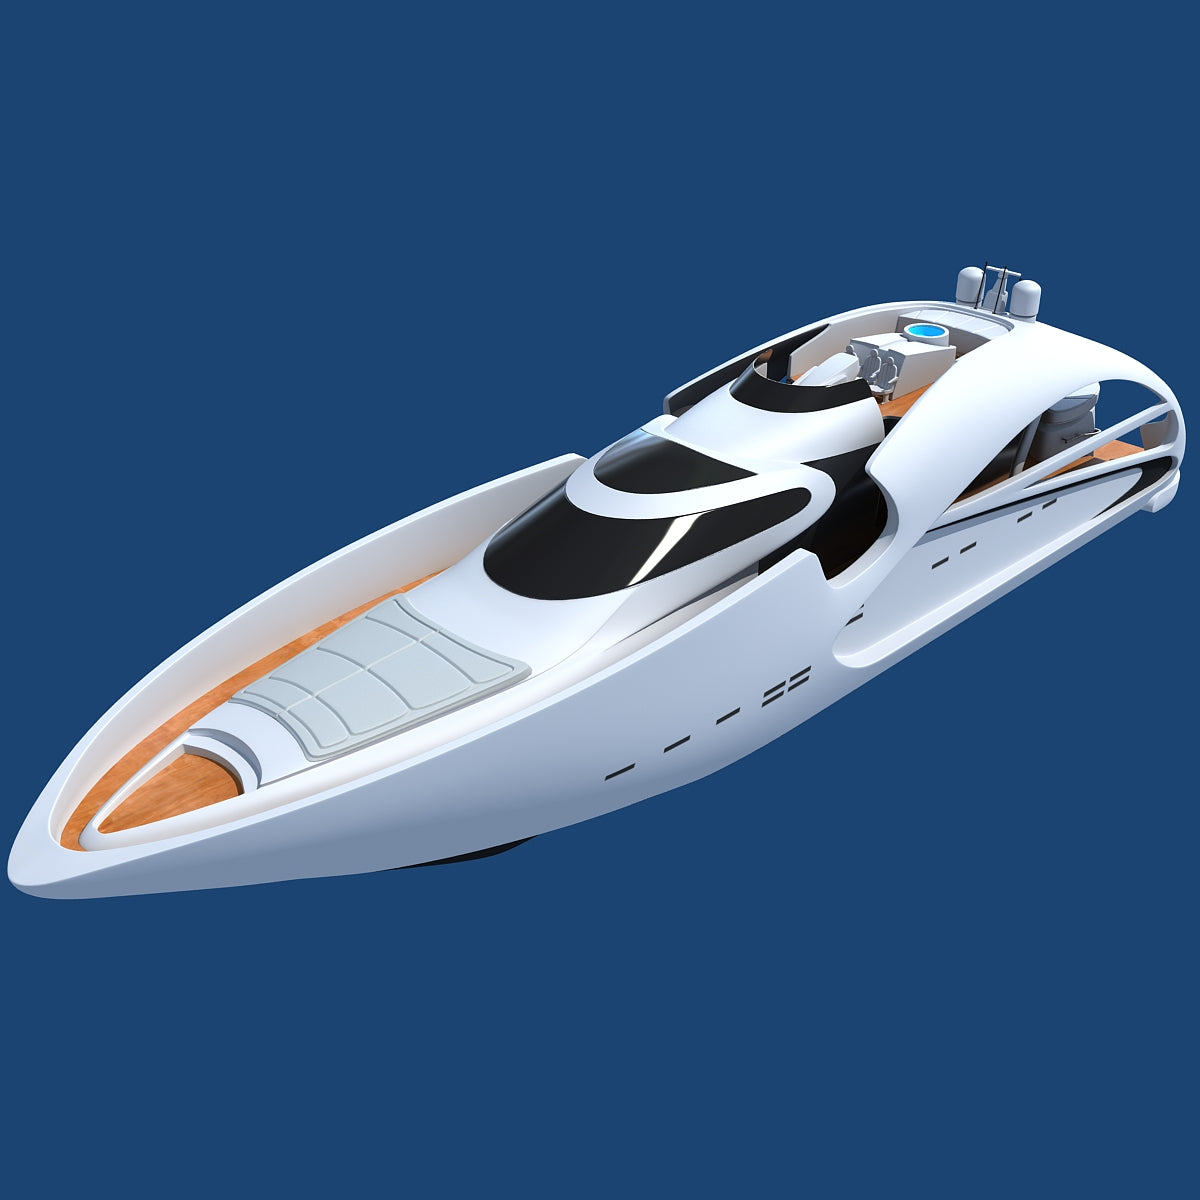 Yachts and Boats 3D Models